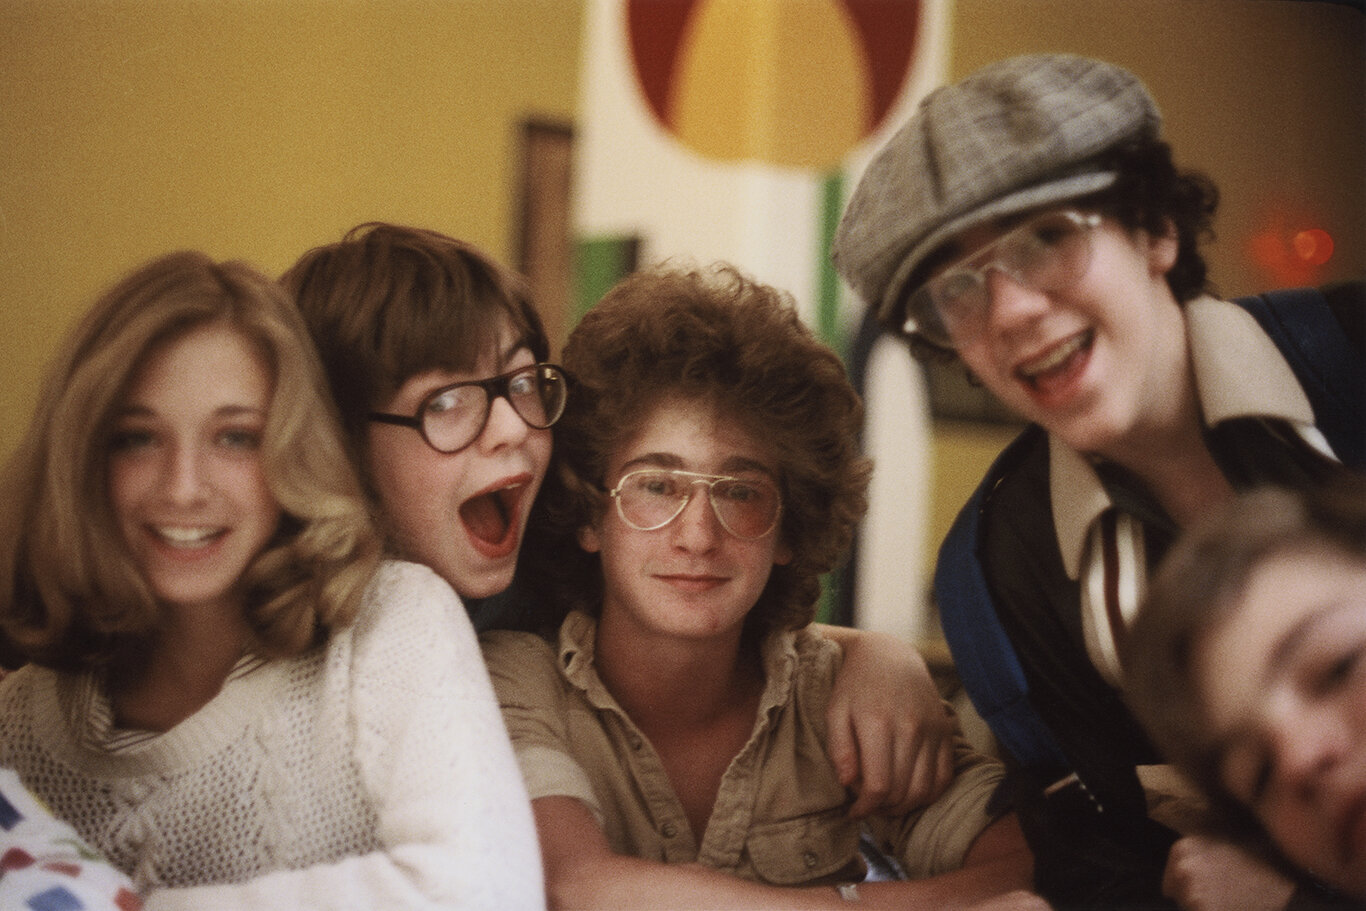 Child actors and models, Professional Children's School (1979)  —  My first speciality as a journalist/photographer was education, with an emphasis on arts education. This gave me a great excuse to hang out at cool schools, like the Professional Children's School, alma mater of Dustin Hoffman and Milton Berle and many other well-known figures in the arts and entertainment. This photo, of some of the junior thespians, models and comedians - guess who was what.